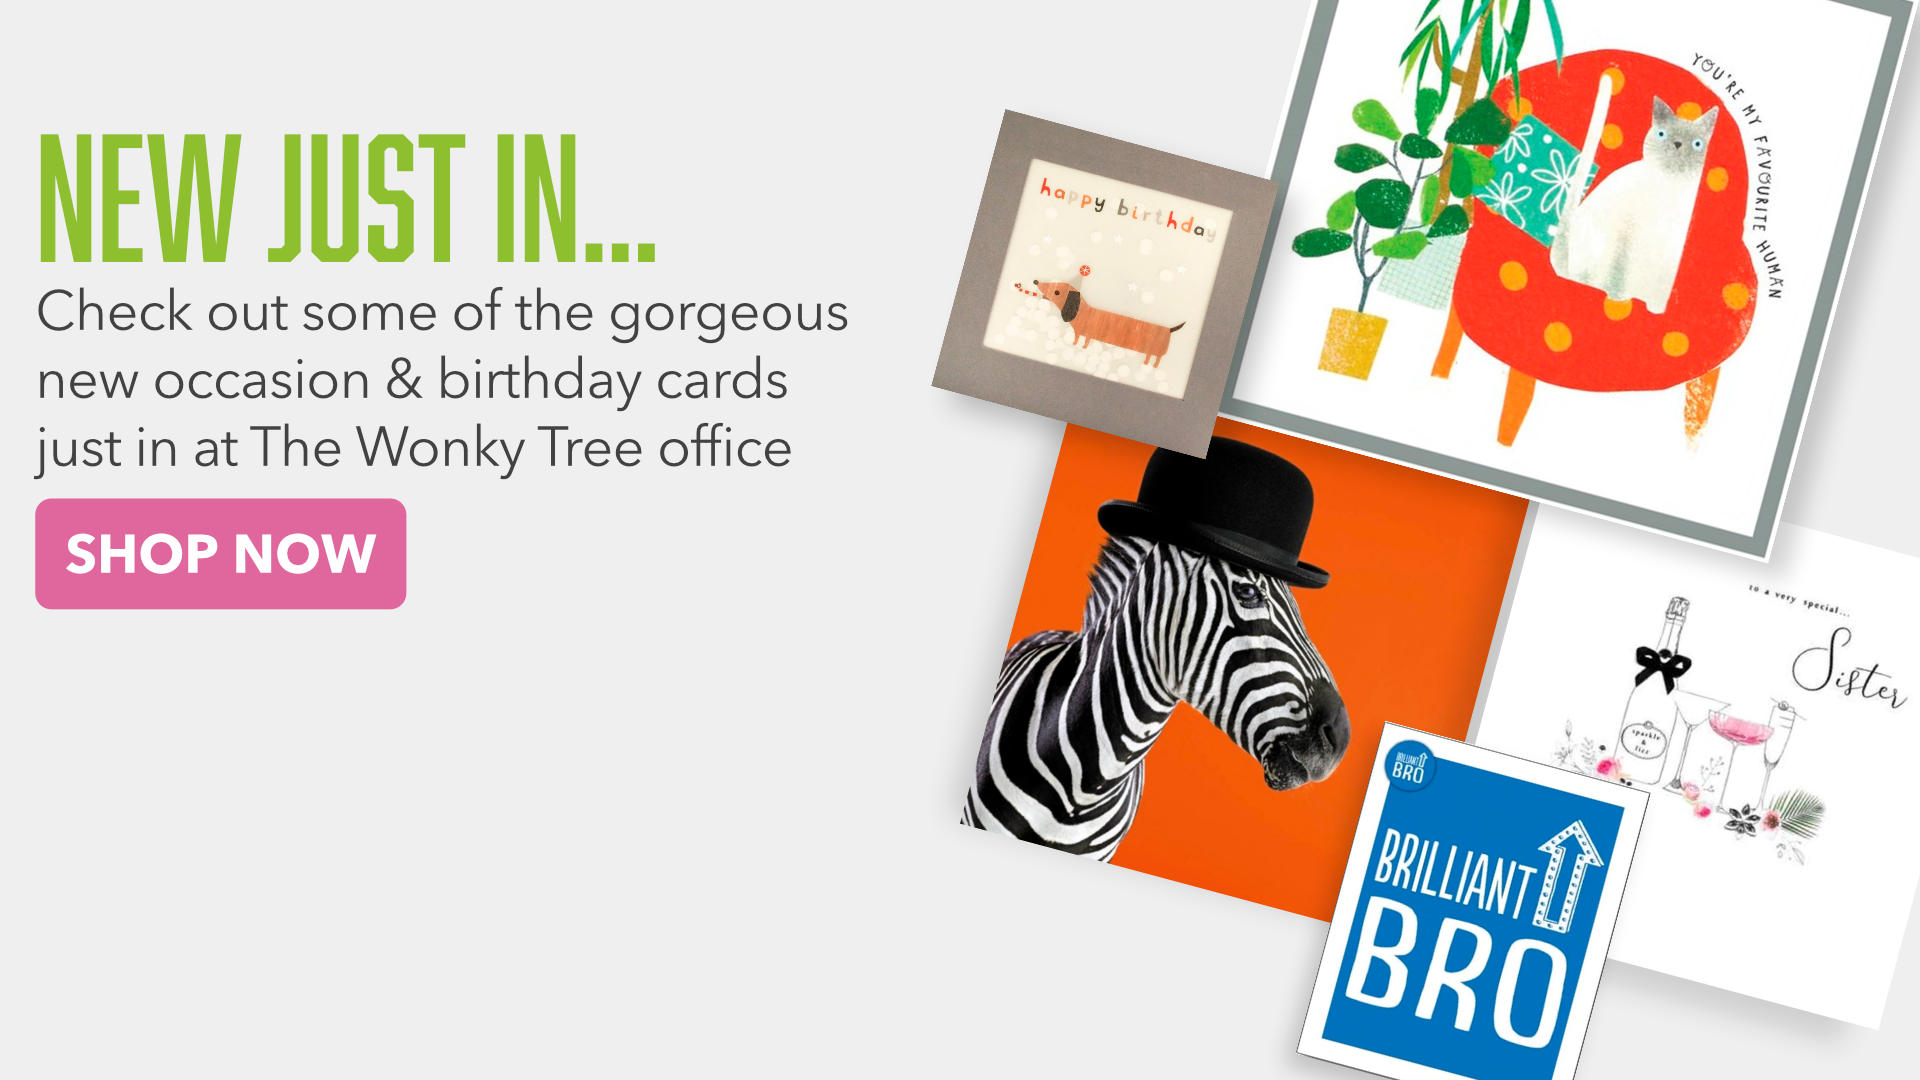 New Cool and Quirky Birthday Cards for all ages